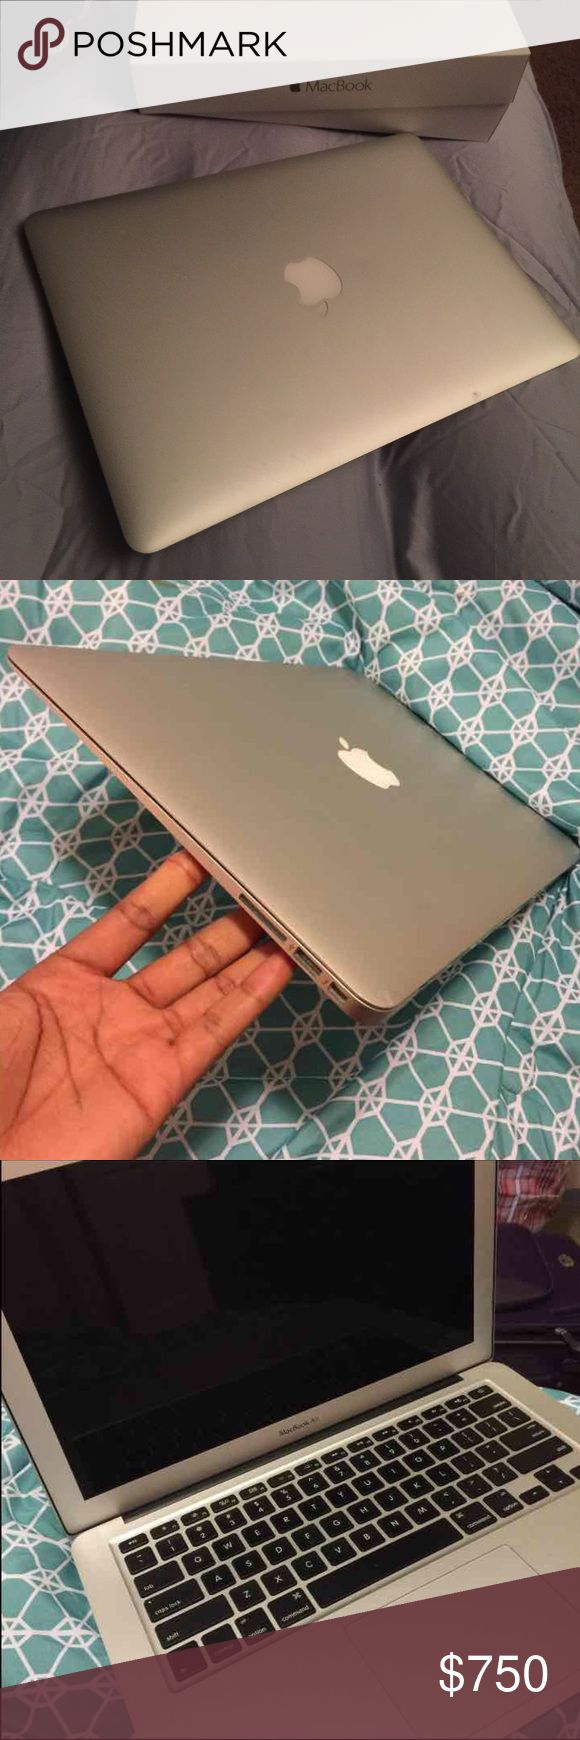 ‼️Brand new MacBook Air on sale‼️ It's almost new. Had for a month and upgraded to the latest MacBook.(my boyfriend got me a new one so I decided to sell this and get the money back).It has no scratches because I had a cover on it. It's got 128GB storage.It's a screen size of 13 inches .Processor; 1.6GHz dual_core Intel i5 RAM memory 8GB.720p FaceTime HD camera.Battery lasts 12 hours .I can try to negotiate but please be fair because it's almost new and in real good condition. Box just for…